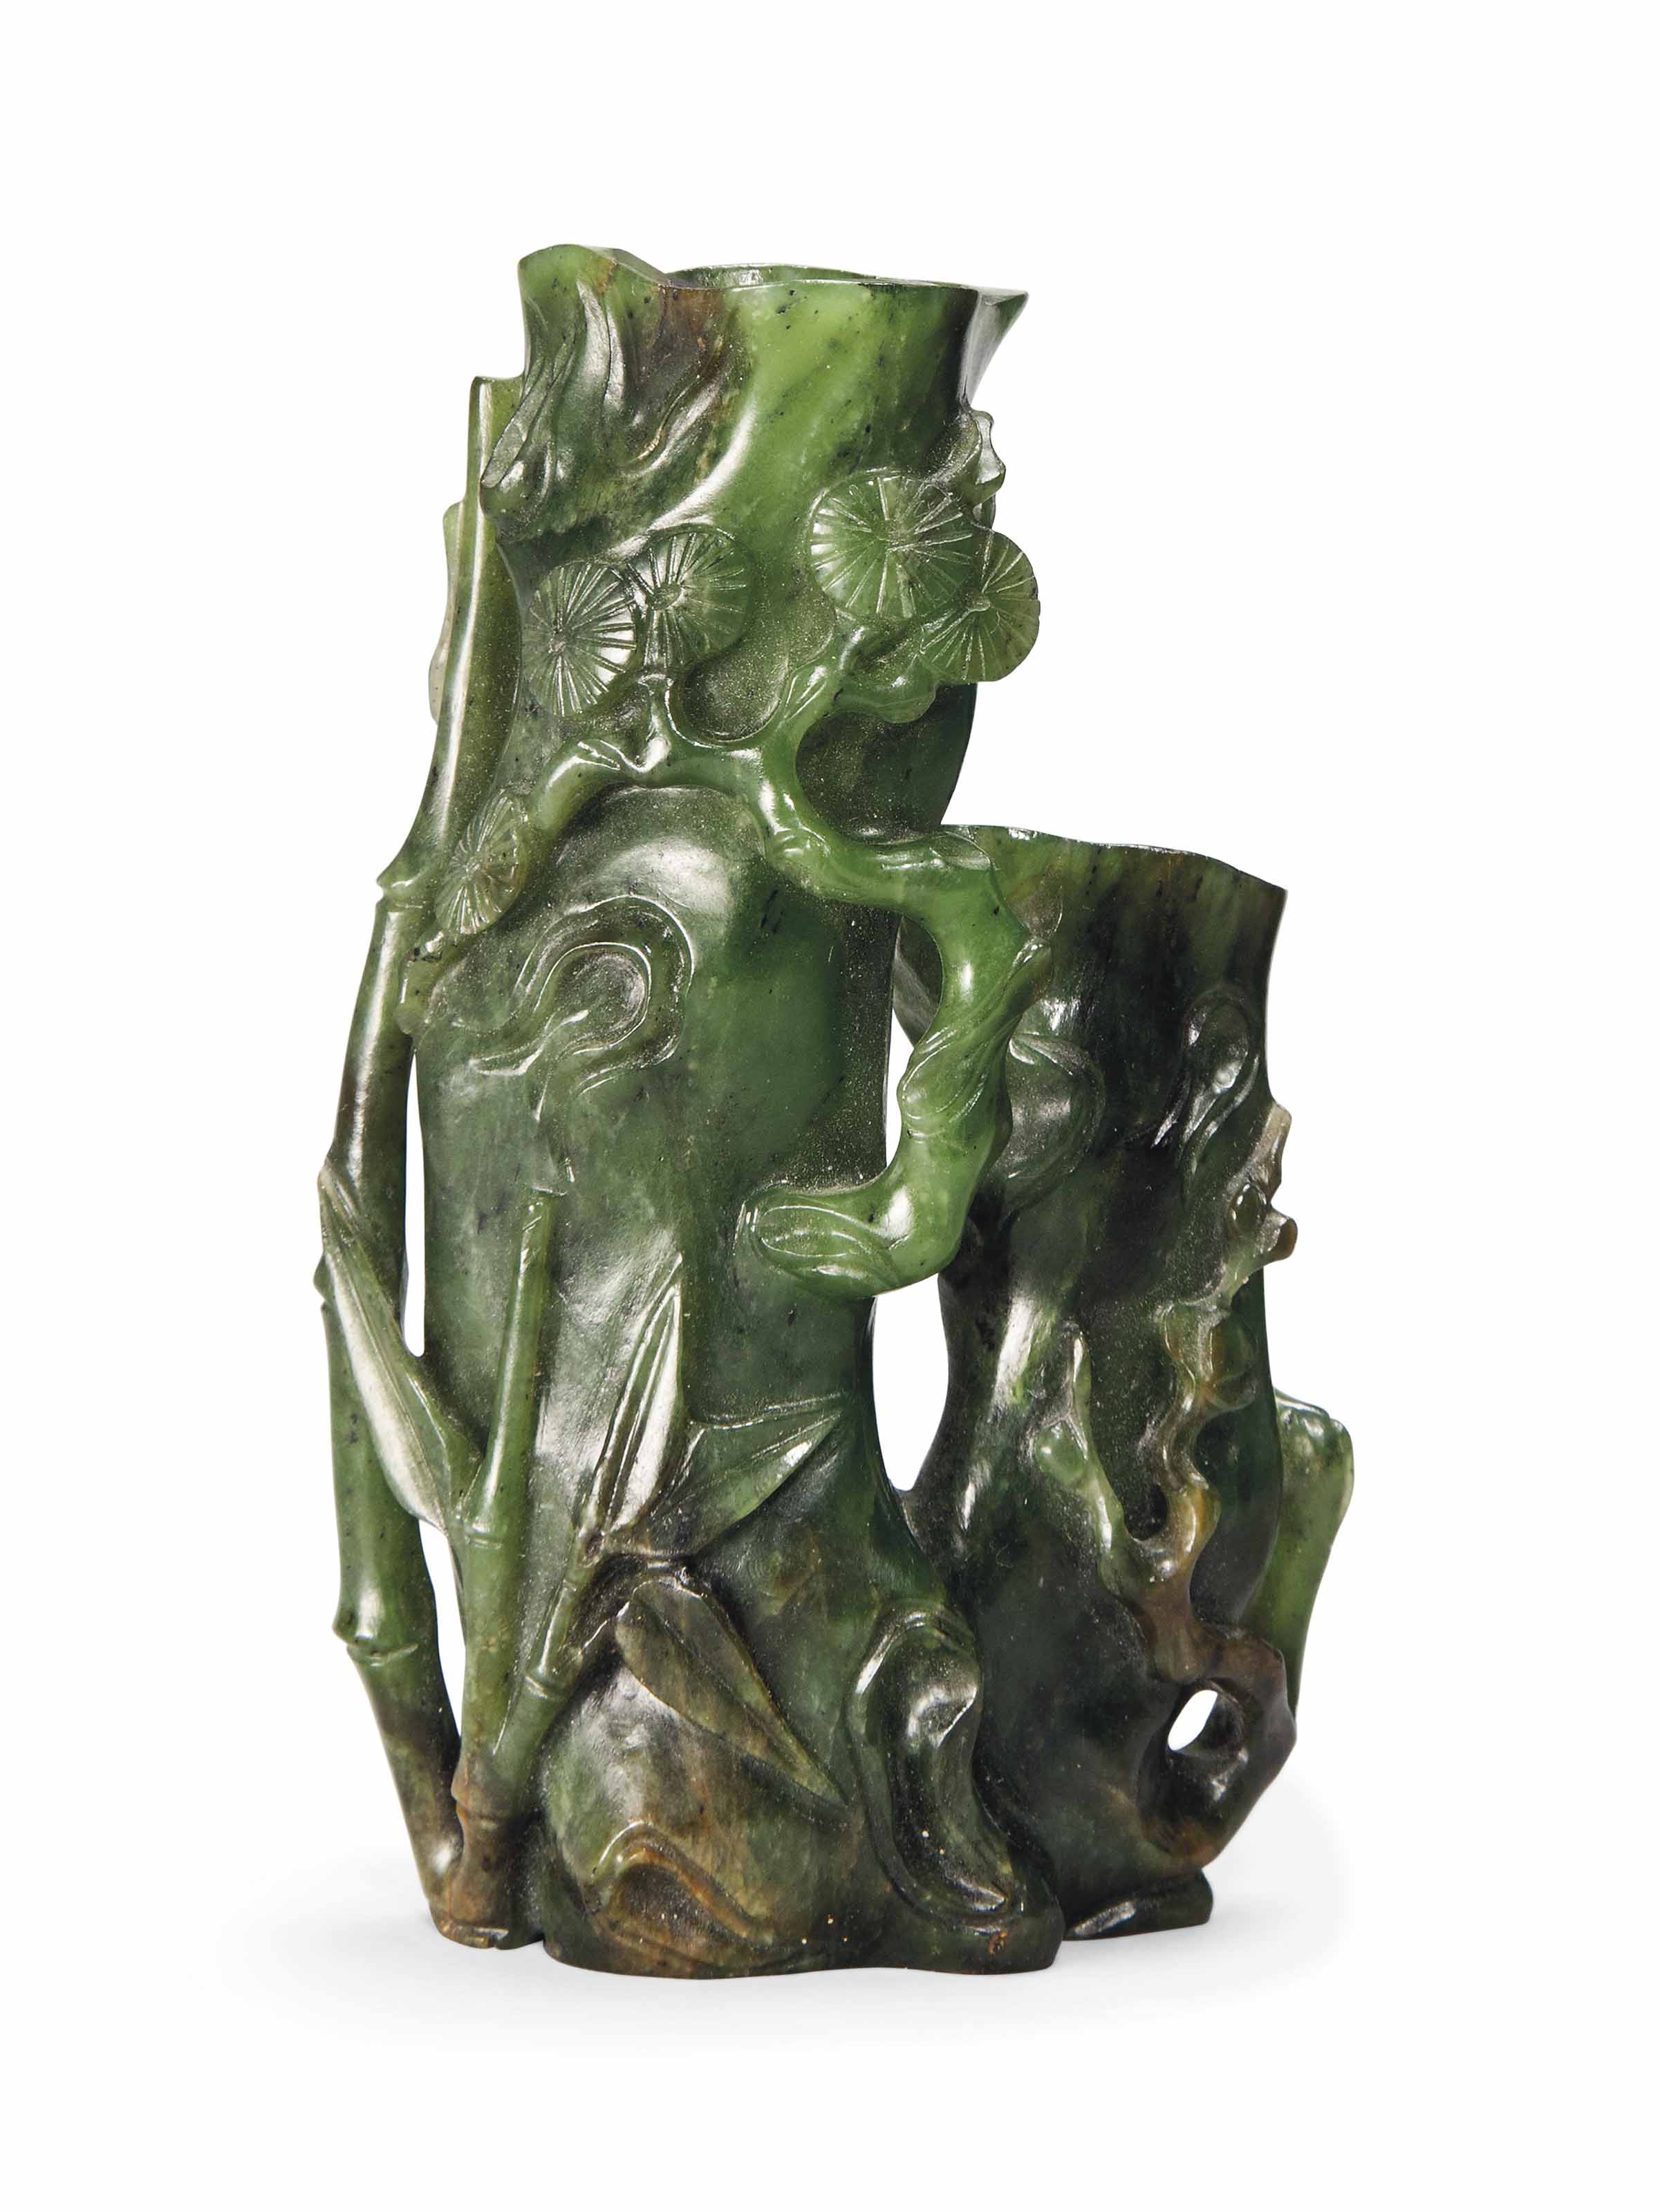 A CHINESE SPINACH-GREEN JADE VASE